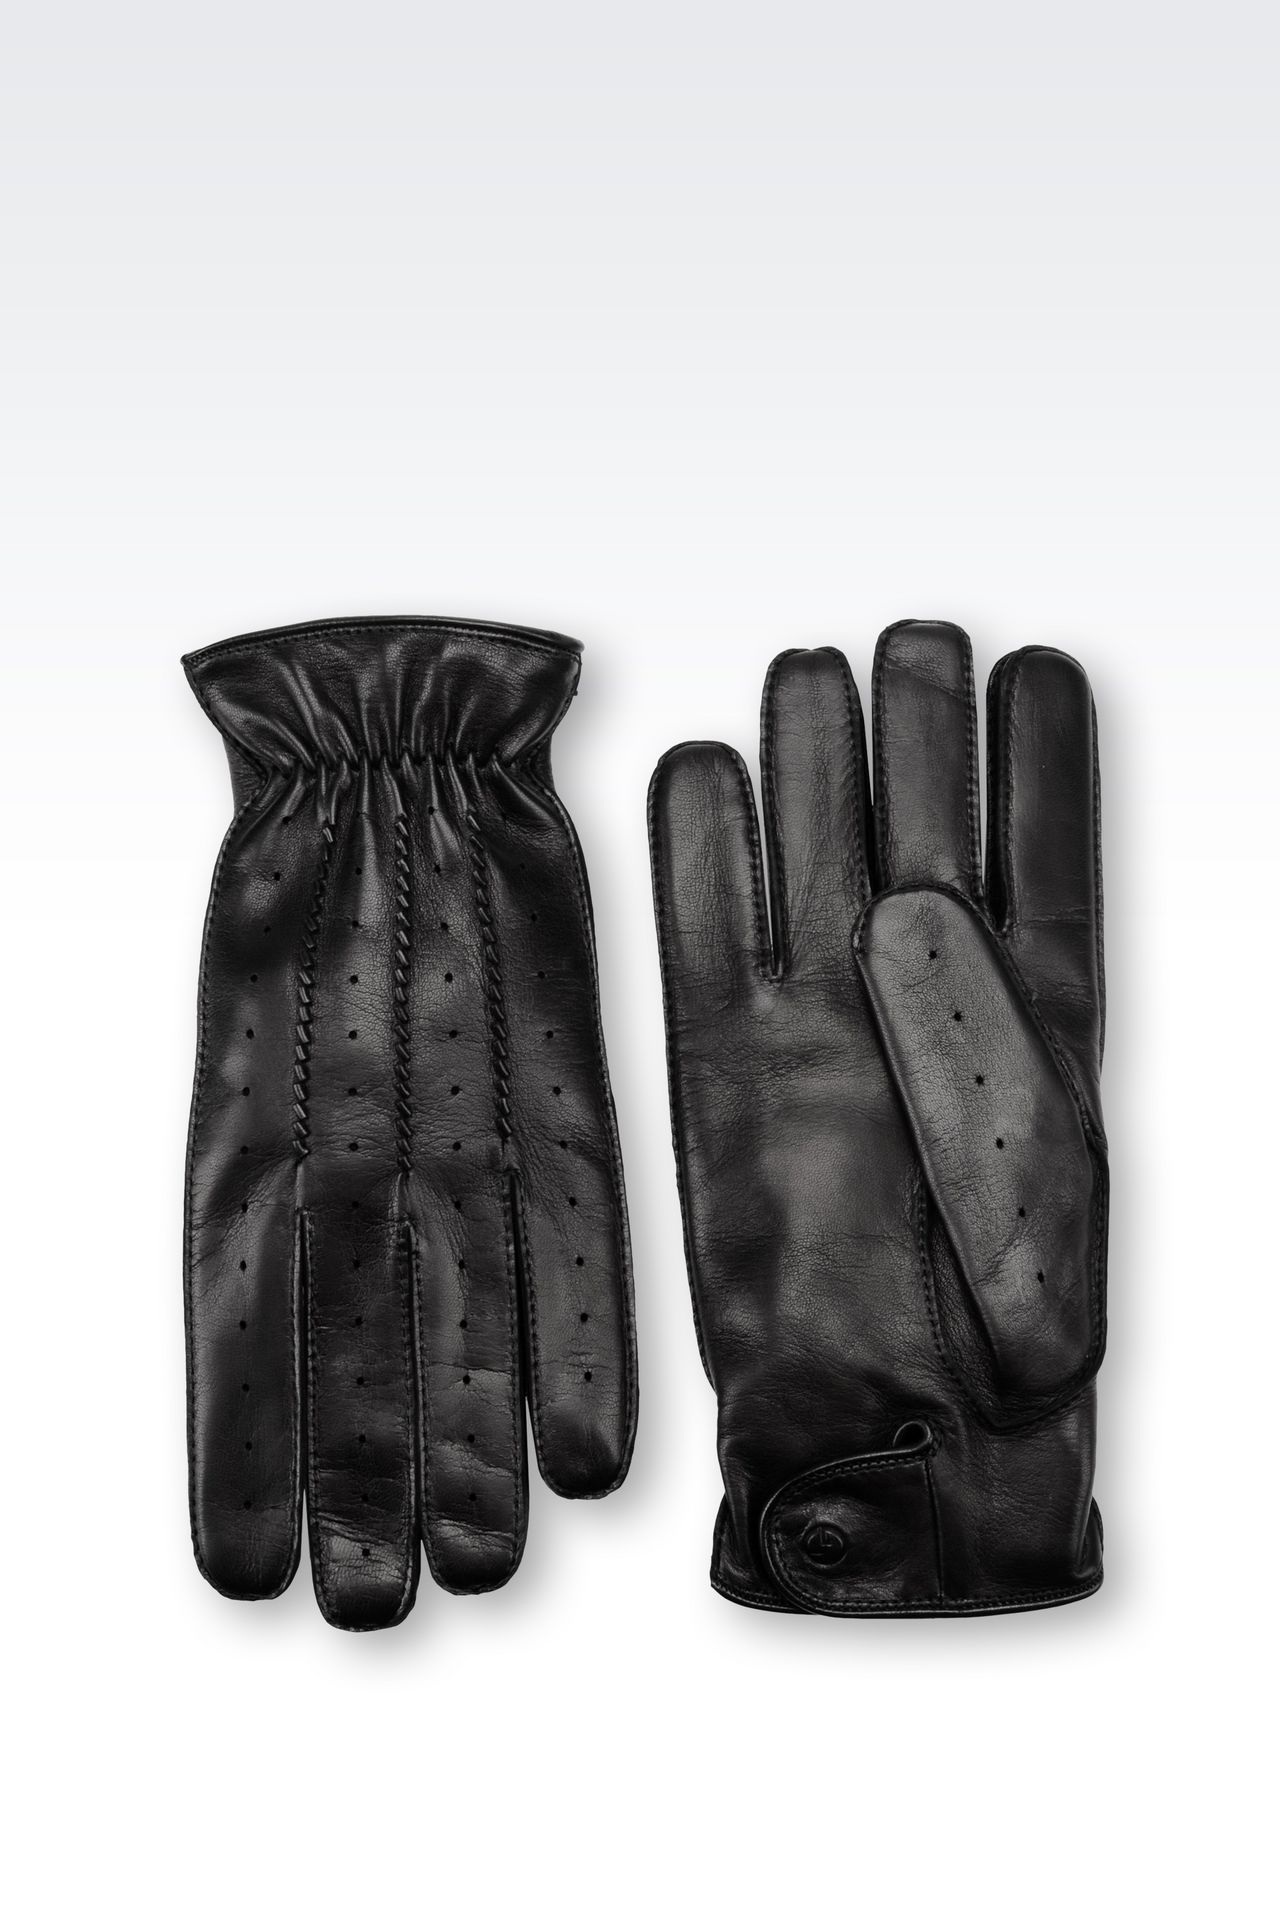 Armani exchange black leather gloves - Napa Leather Gloves Gloves Men By Armani 0